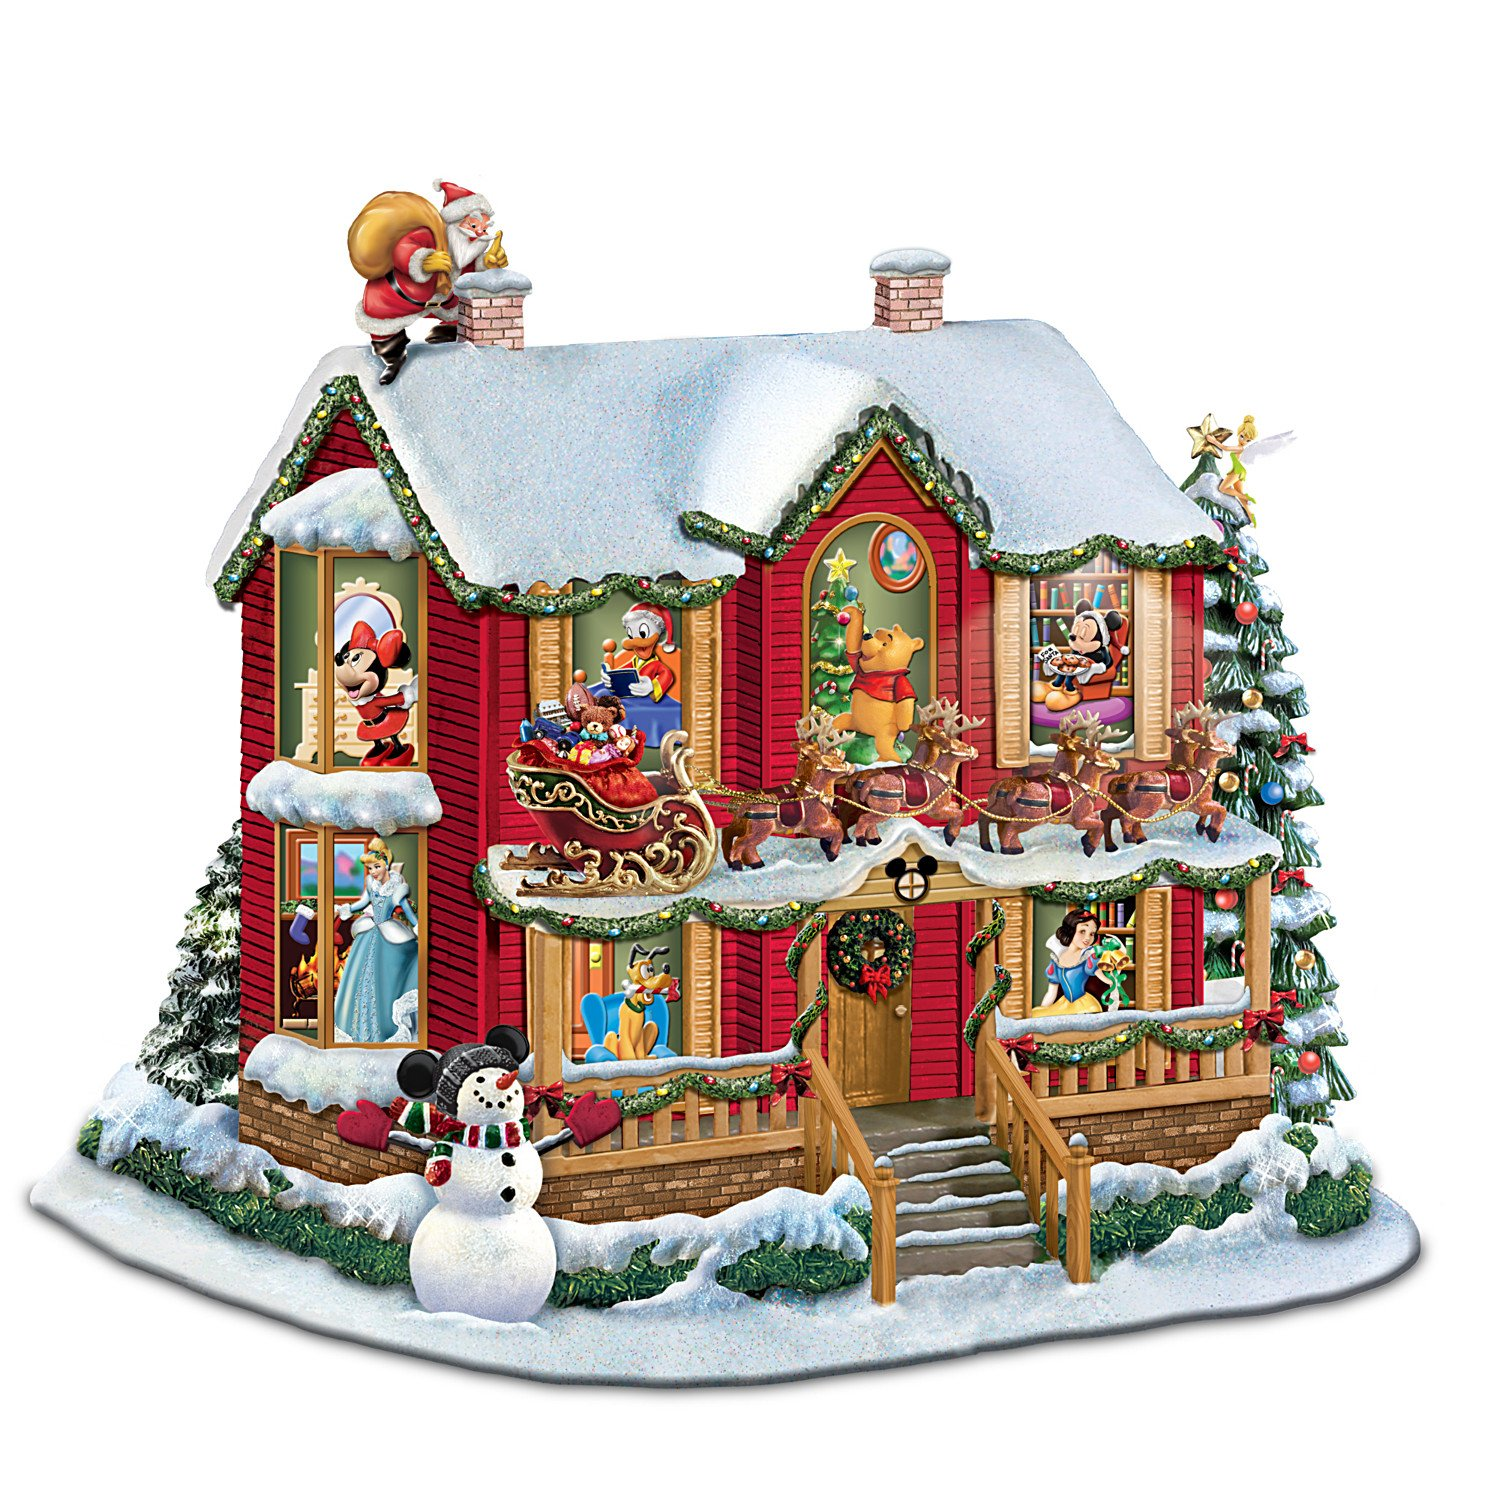 amazon com disney twas the night before christmas sculpture by